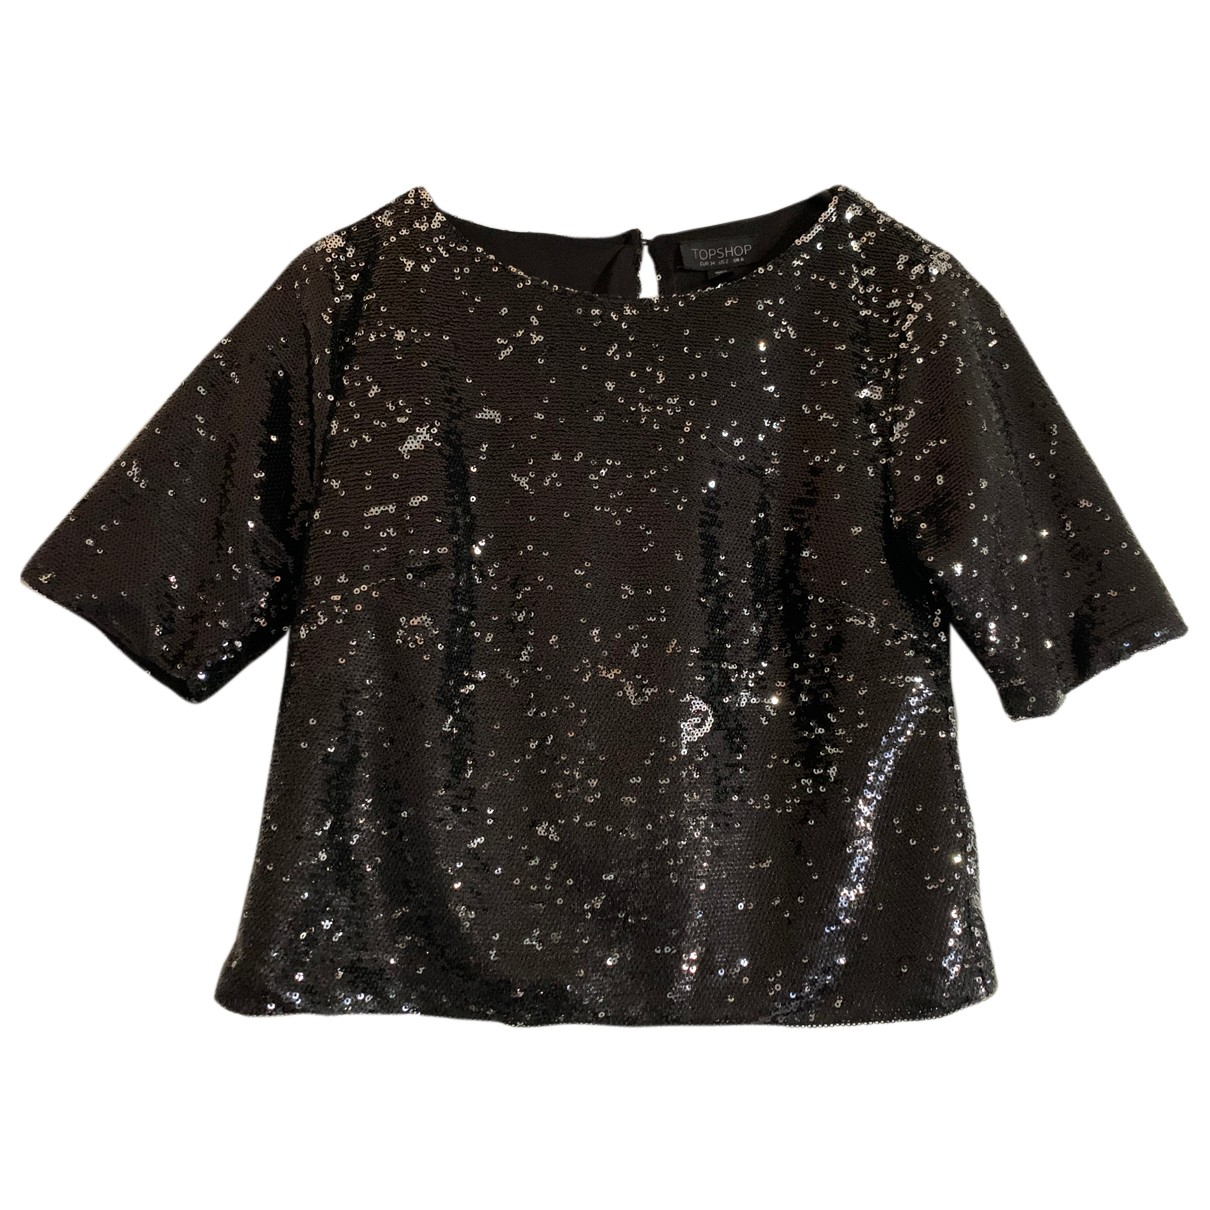 tophop N Black Glitter  top for Women 6 UK